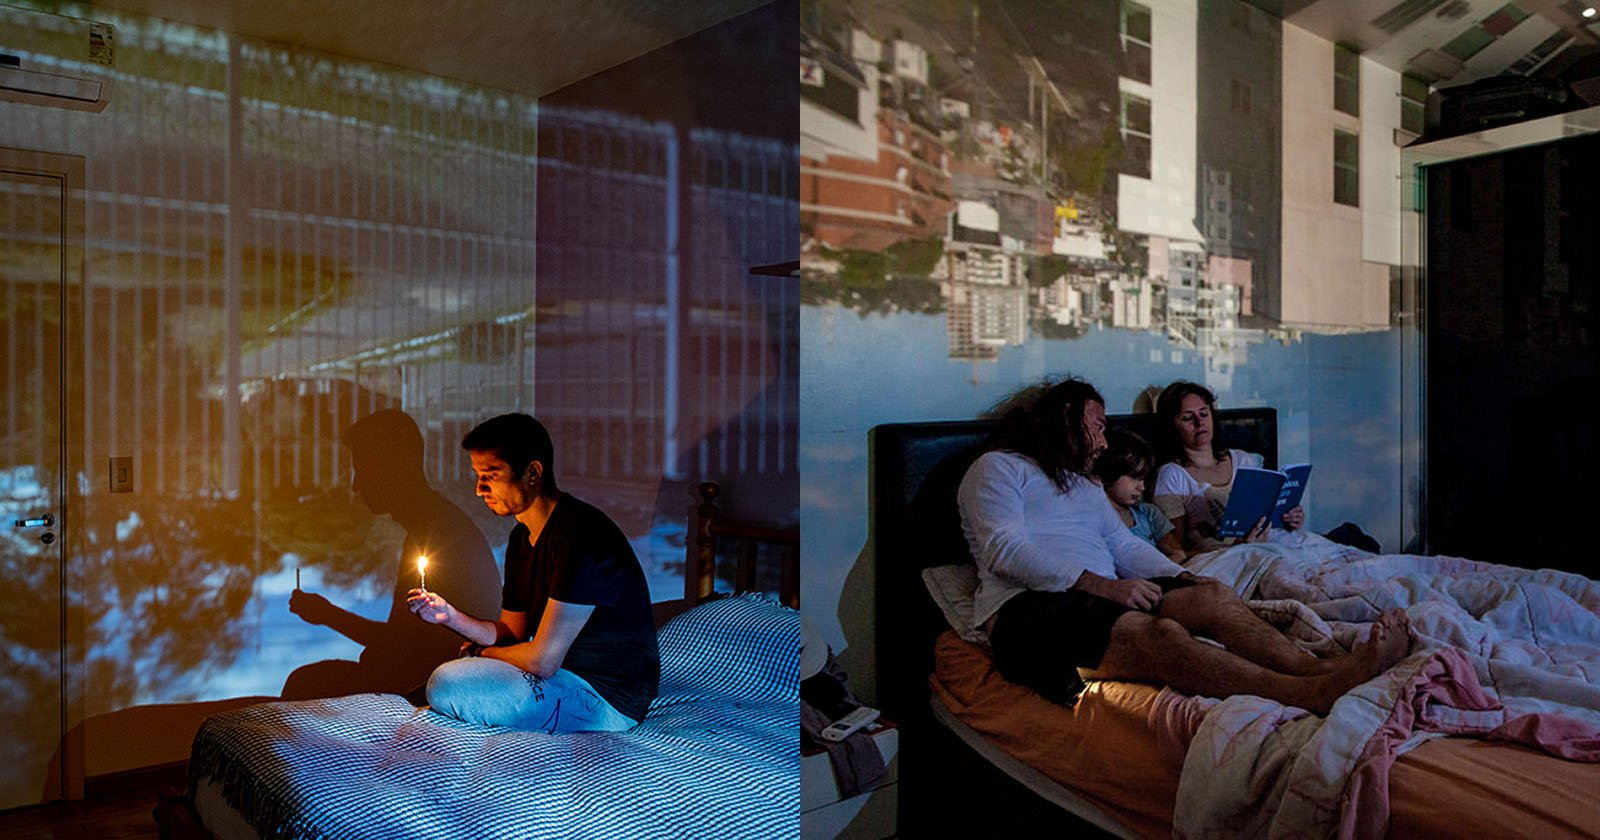 Photographers Turn Their Homes Into Cameras to Capture Pandemic Life